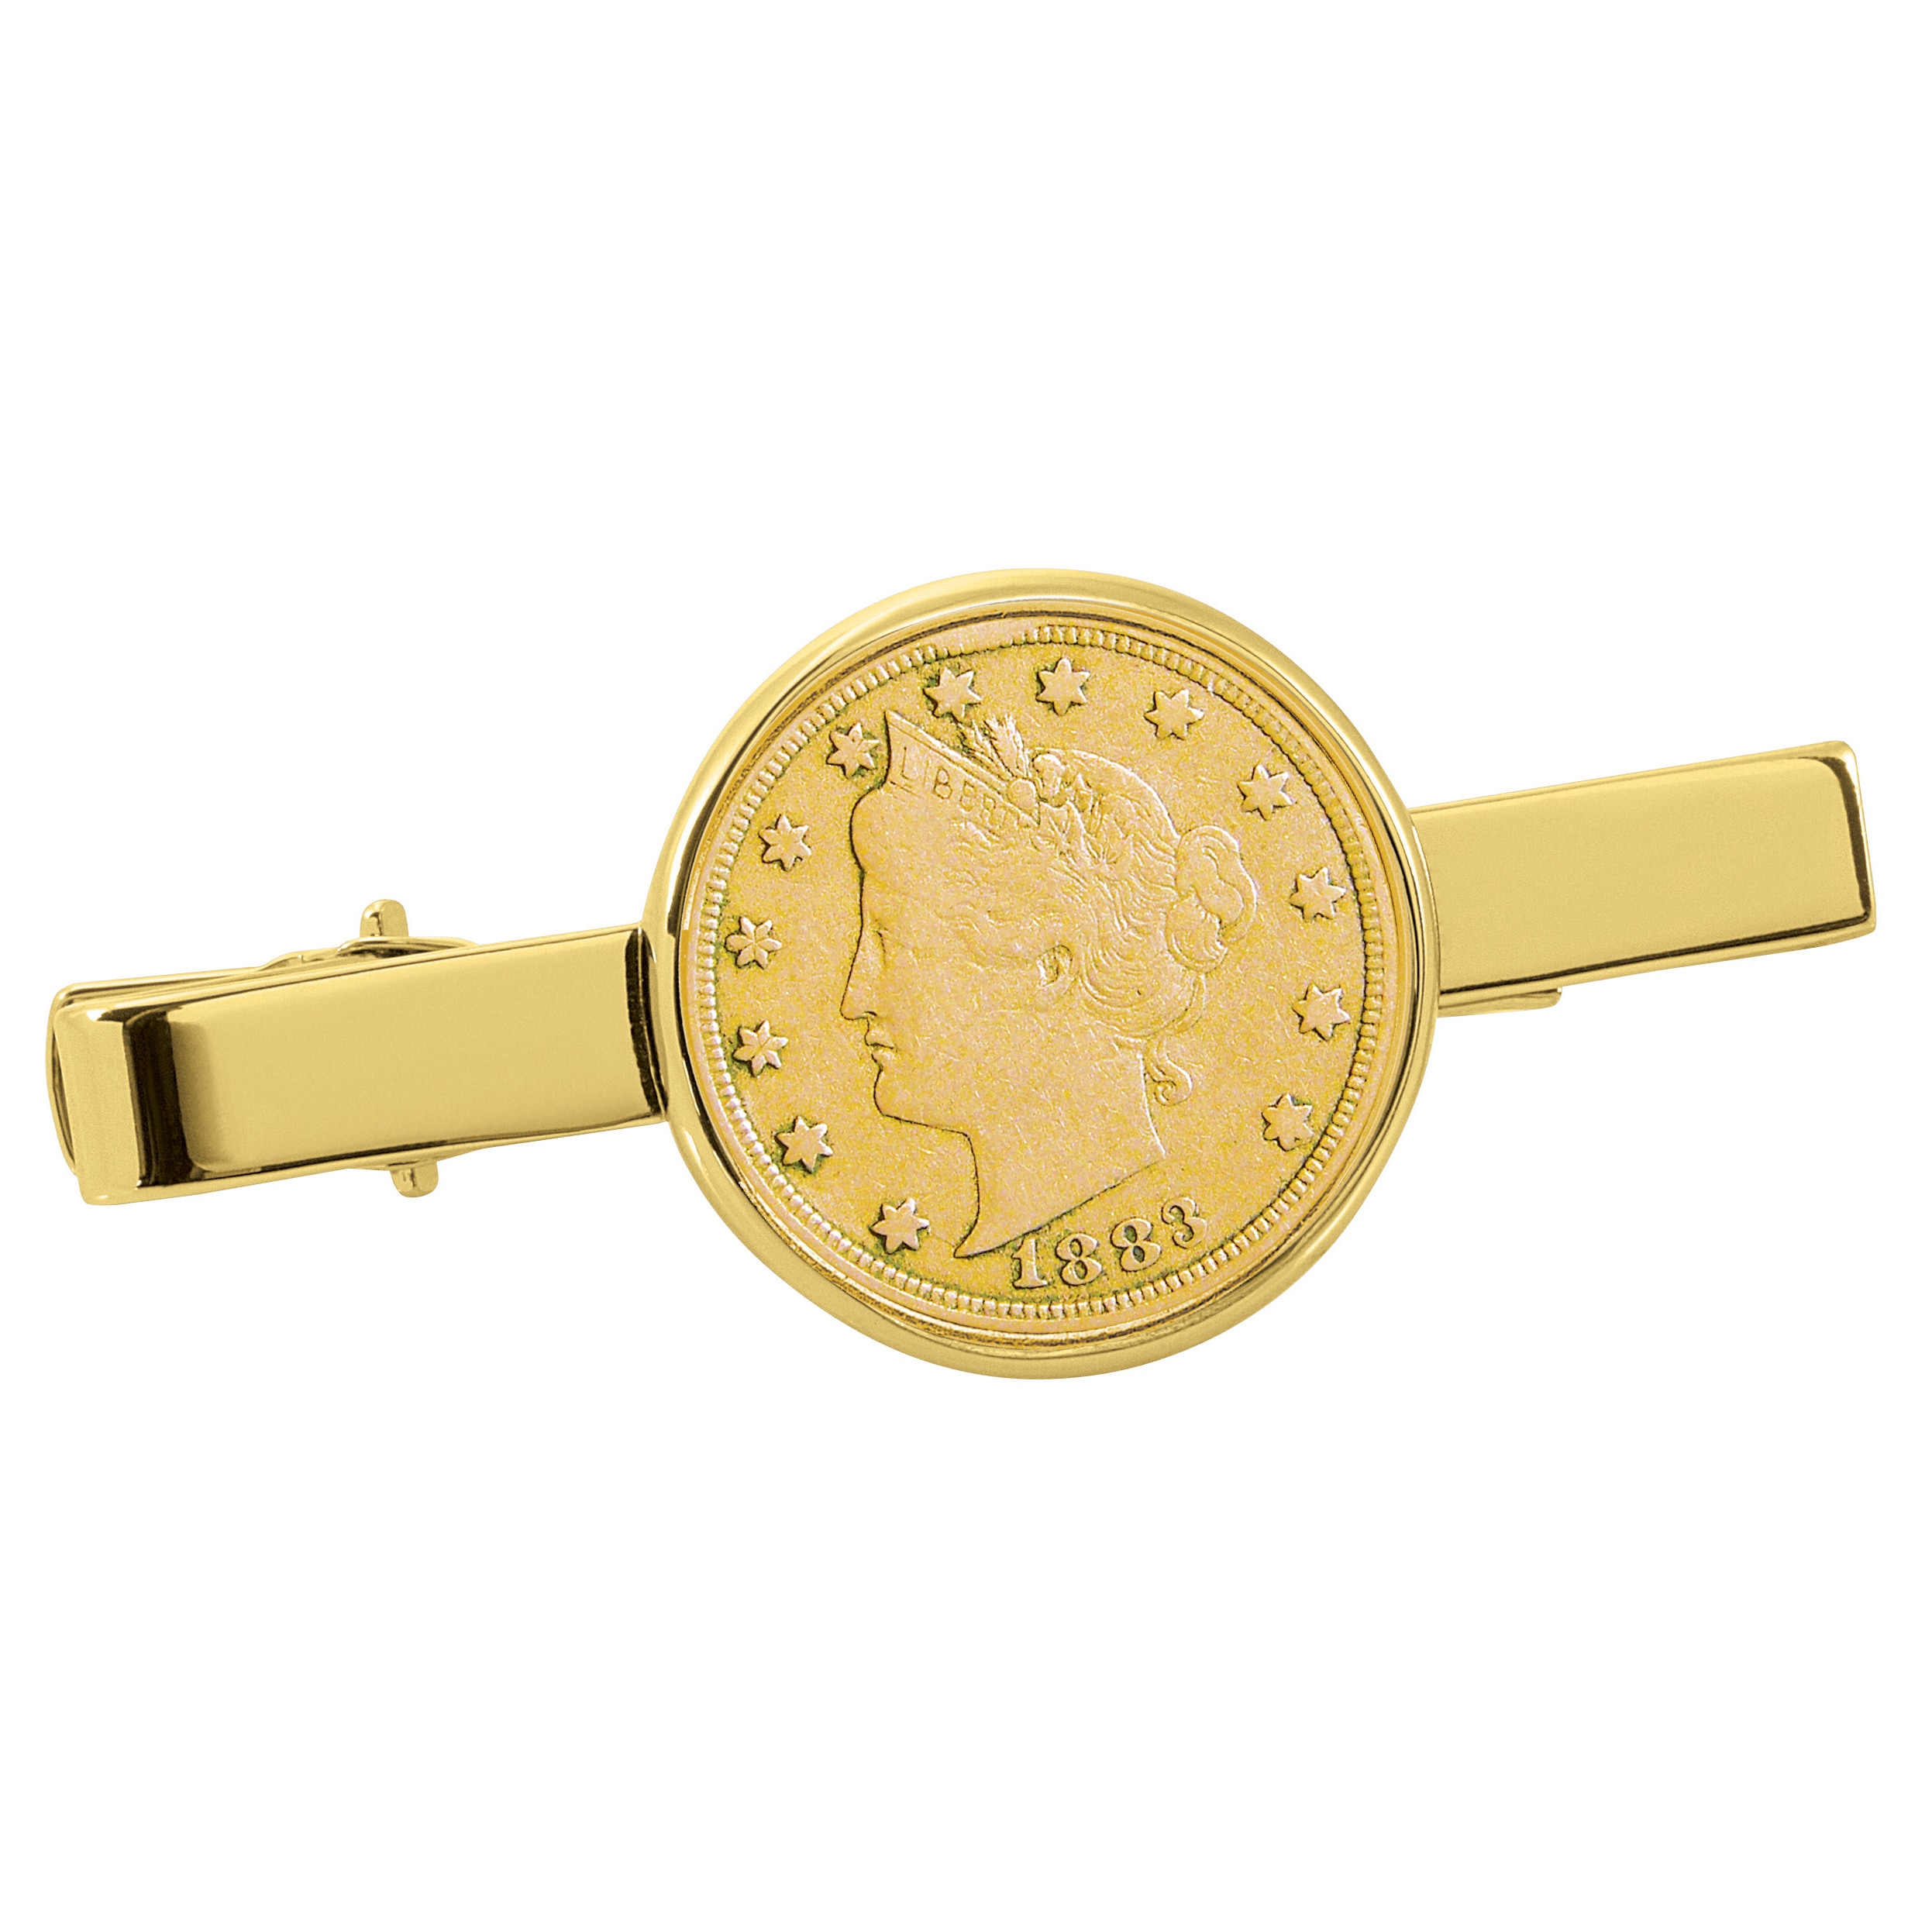 Global American Coin Treasures Gold-Plated 1800's Liberty...